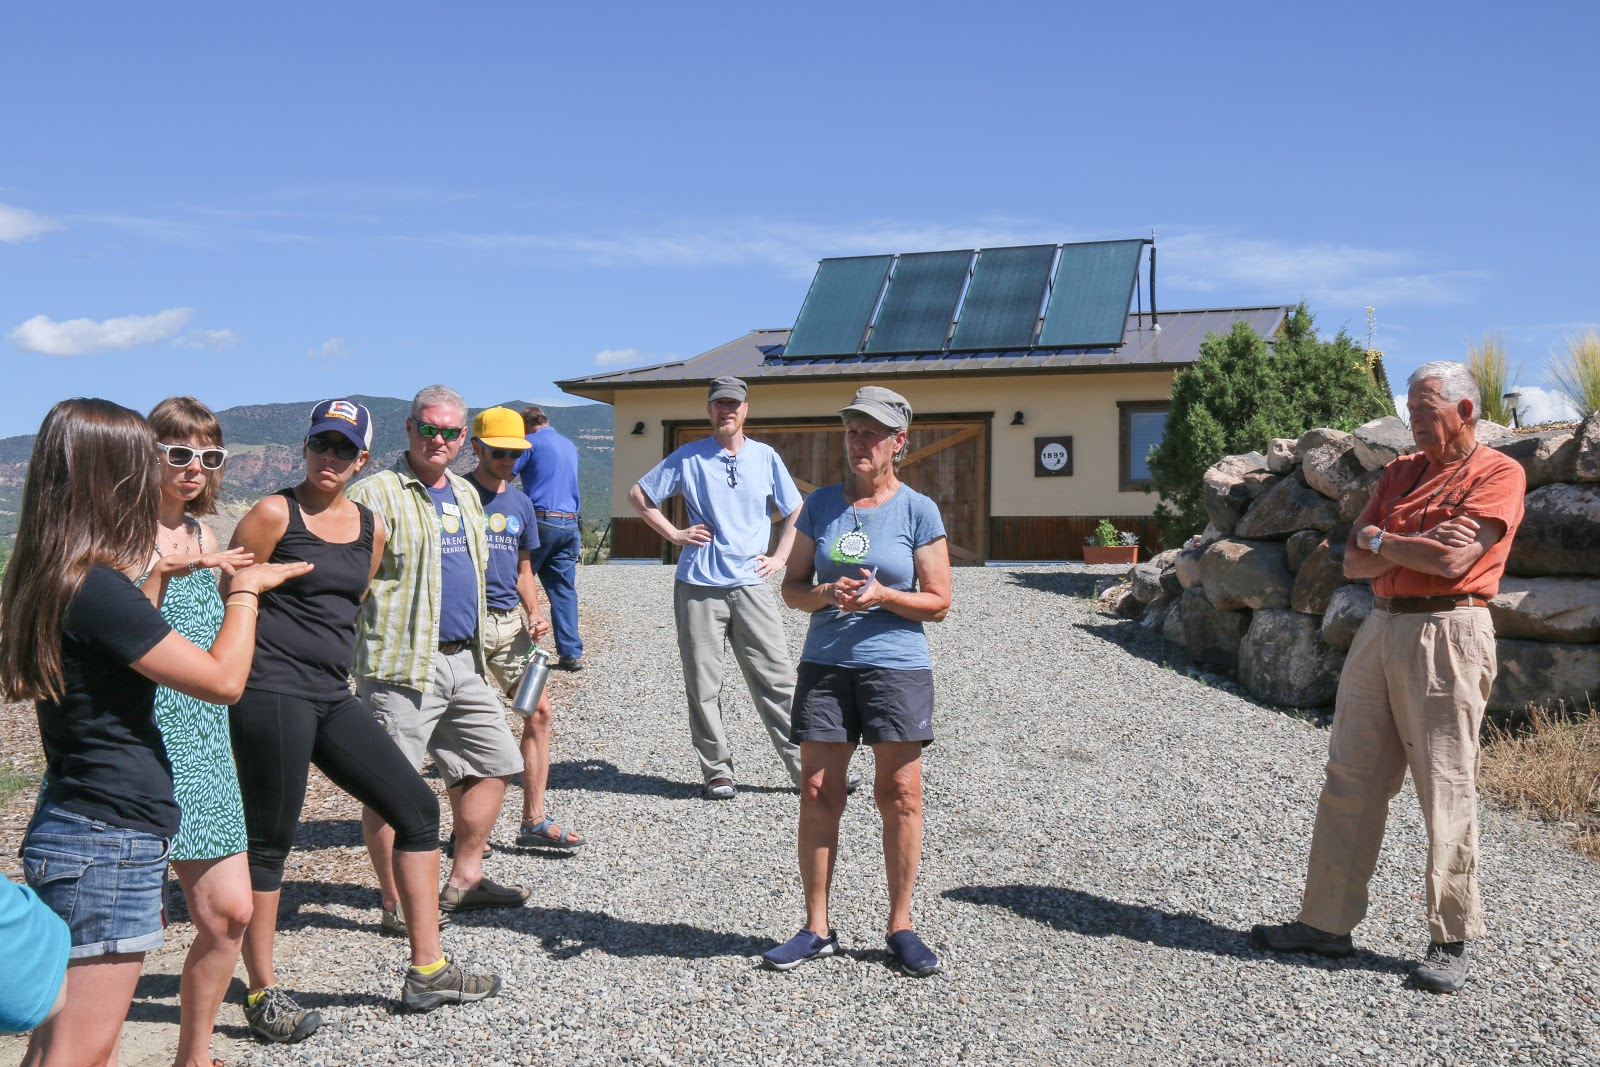 """Solar Ambassador Elaine Brett (middle with cap) opens up her house to a """"Solar Home Tour"""" as part of a Solarize educational event. The Brett's 3.36 kW grid-tied PV system meets all their electrical needs. Being grid-tied allows the Bretts to take advantage of DMEA's generous net-metering policy, which credits customers for the excess energy their systems produce. Picture shows the solar hot water system on their garage. The solar photovoltaic system is roof mounted on the adjoining house."""